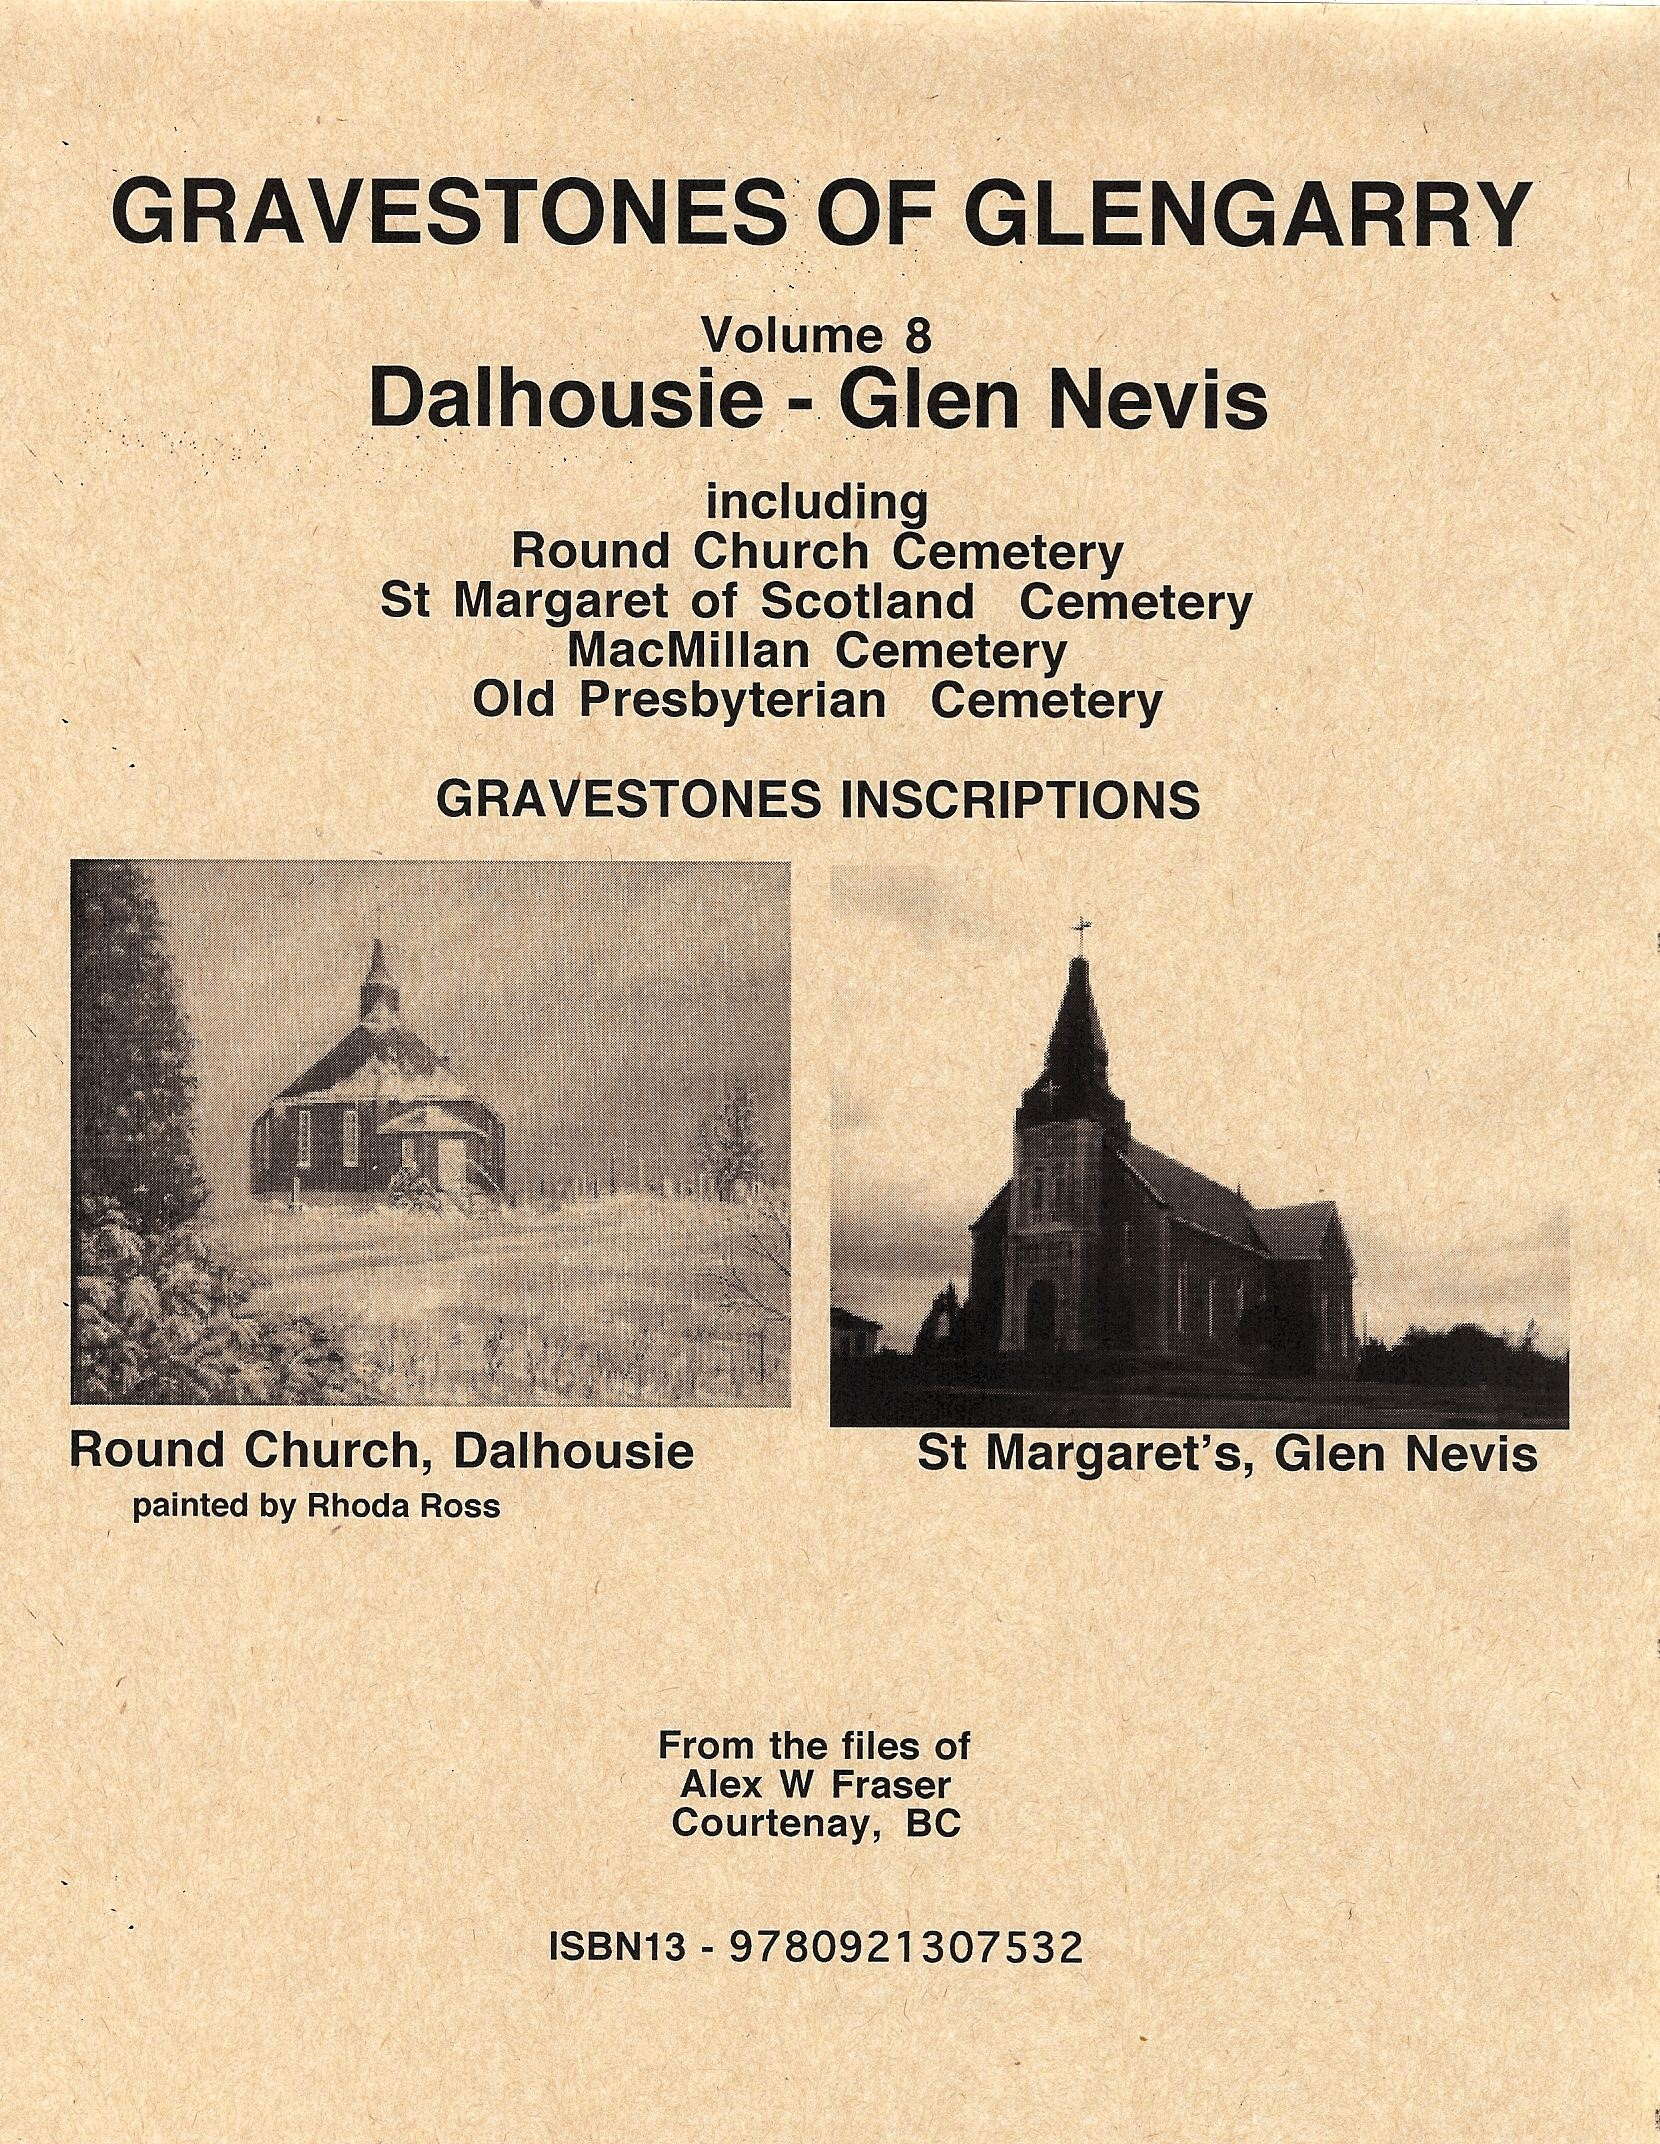 Gravestones of Glengarry v.8